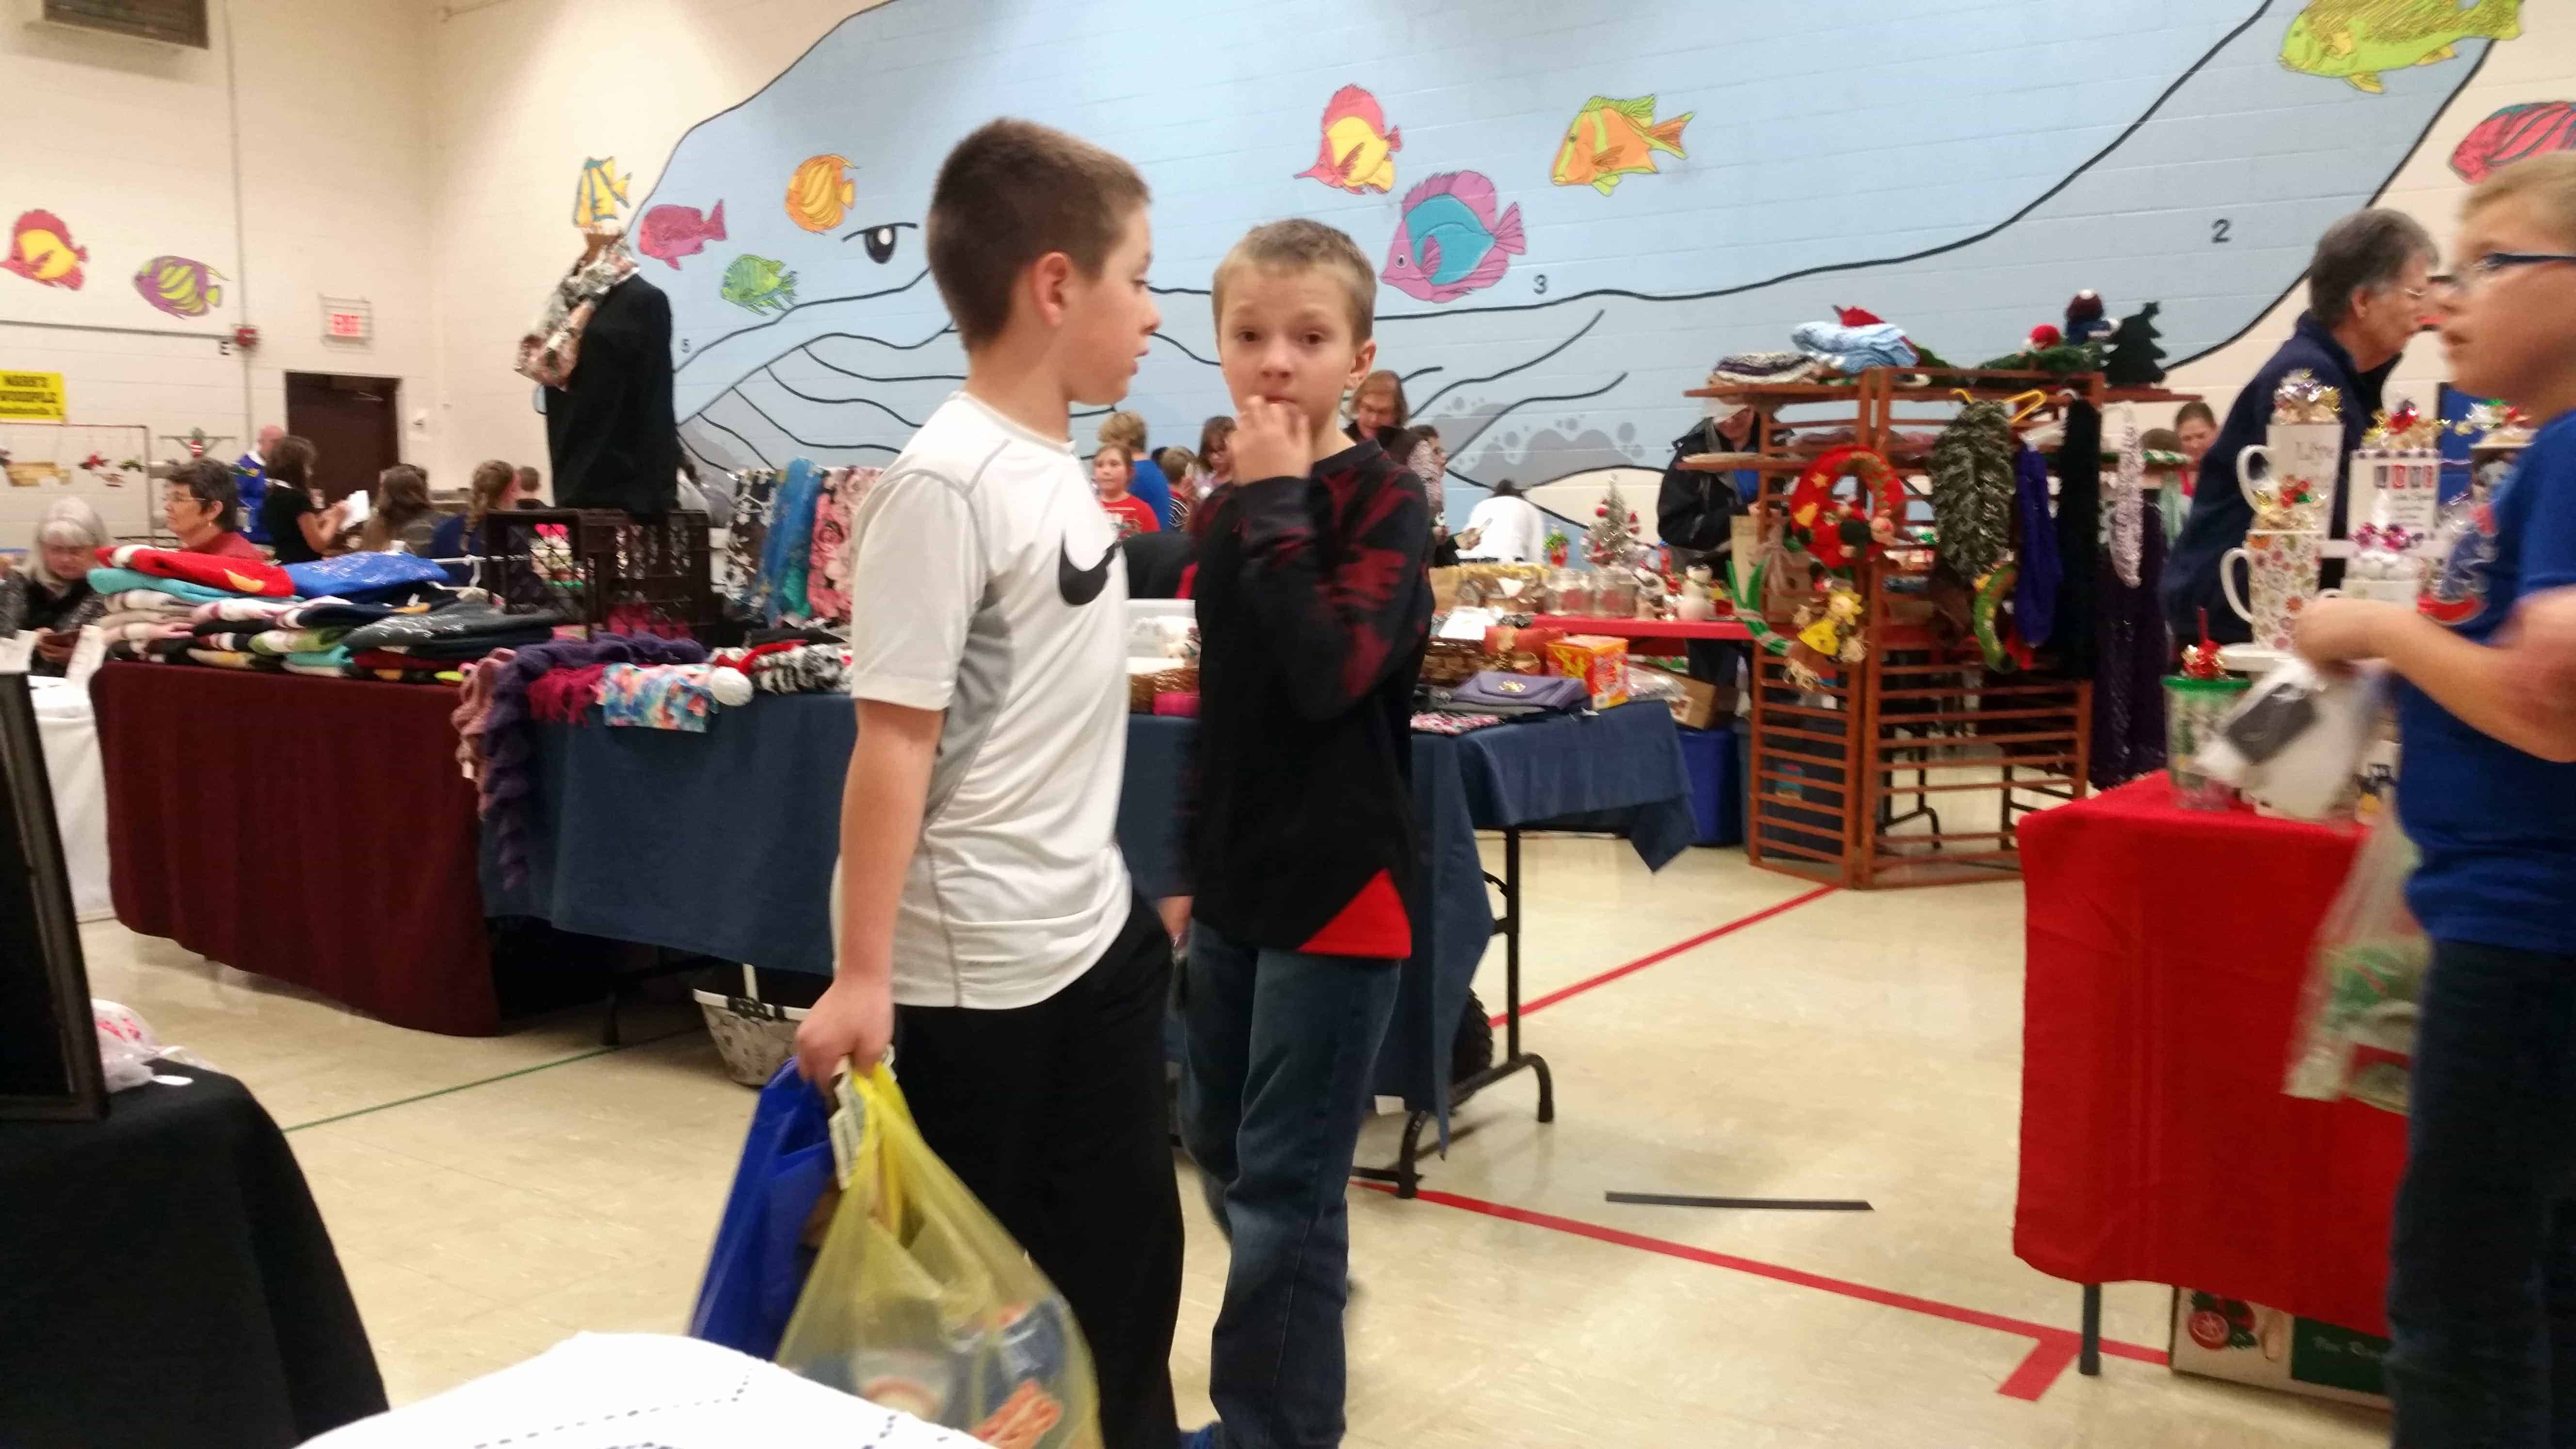 Students purchasing their gifts at the elementary school often strike a thoughtful pose.